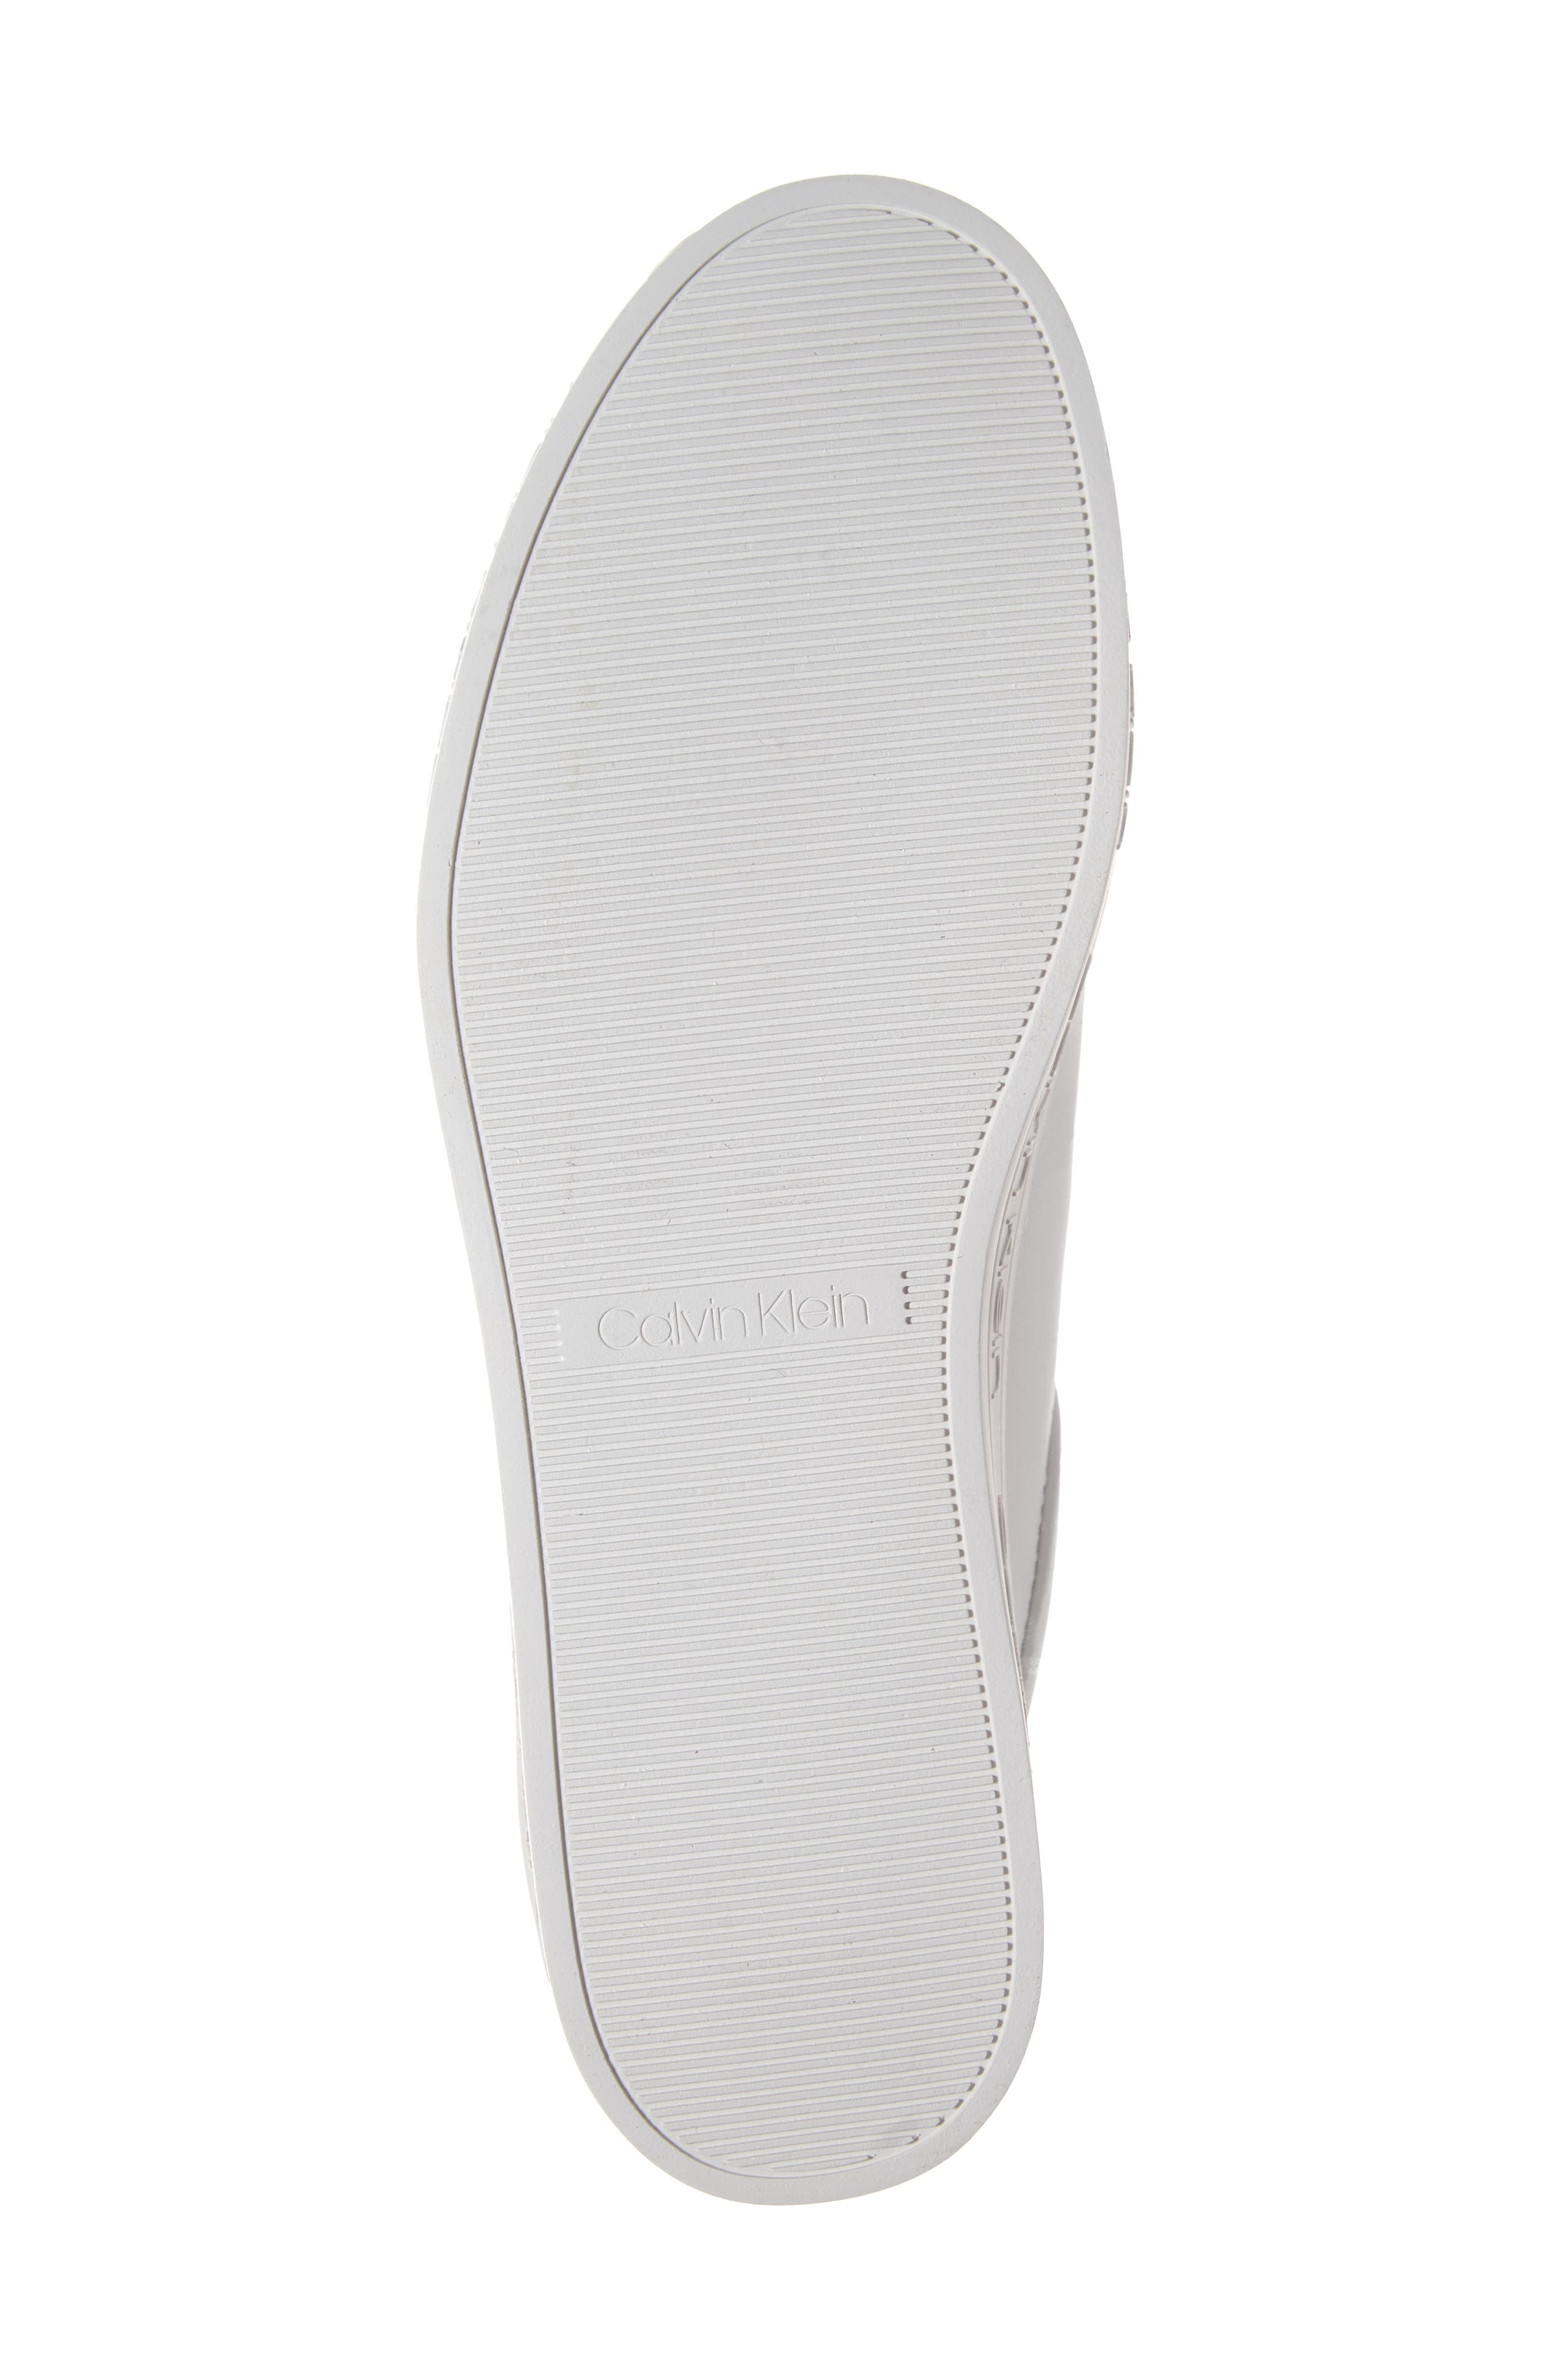 CALVIN KLEIN, Jaelee Sneaker, Alternate thumbnail 6, color, WHITE NAPPA LEATHER